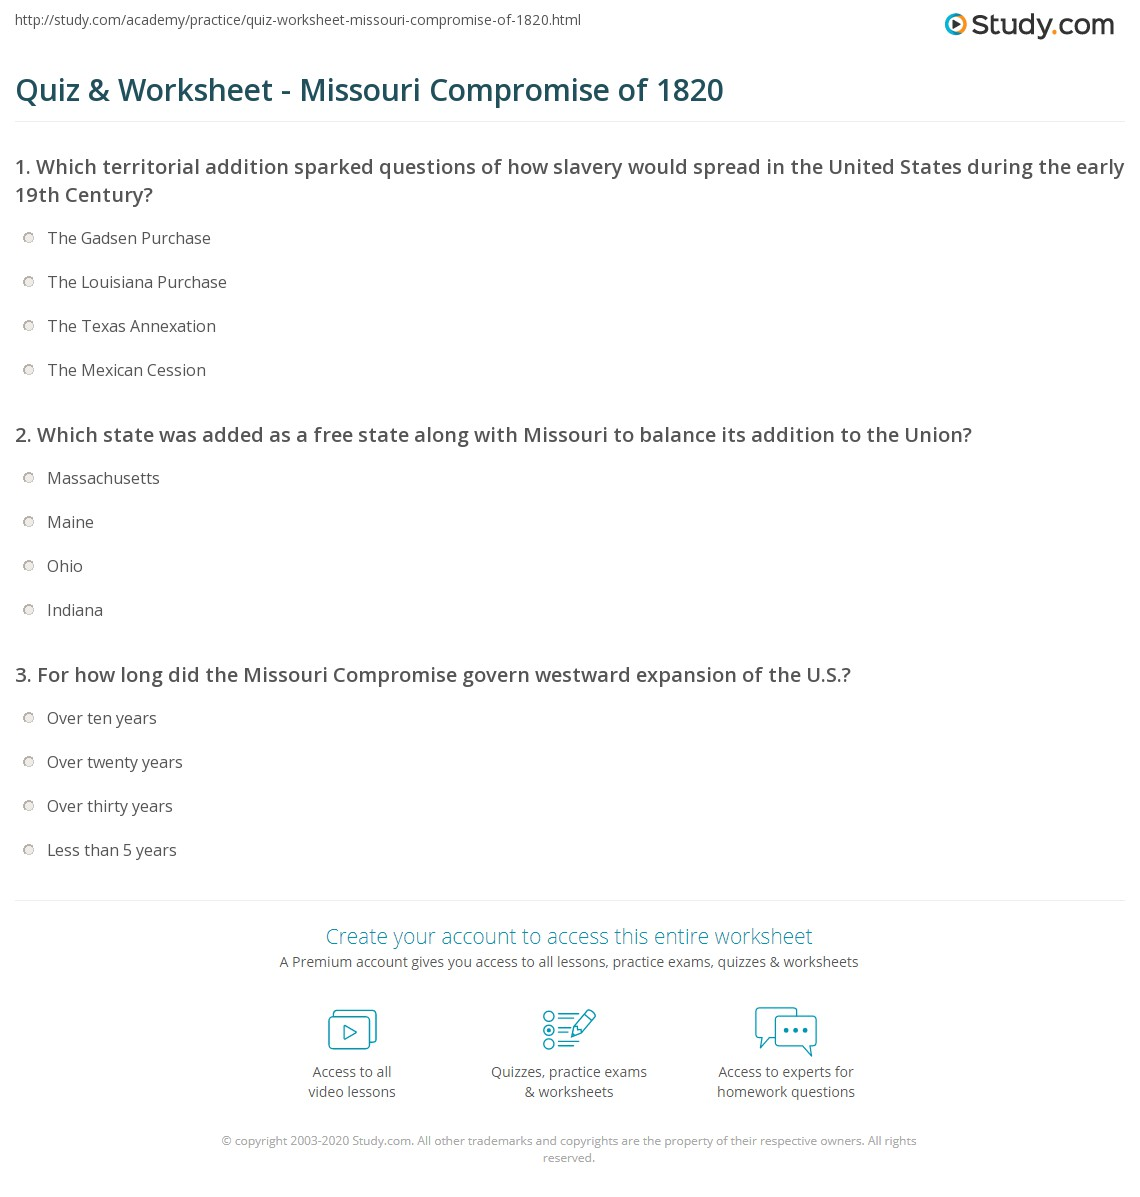 Quiz Worksheet Missouri Compromise of 1820 – Missouri Compromise Worksheet